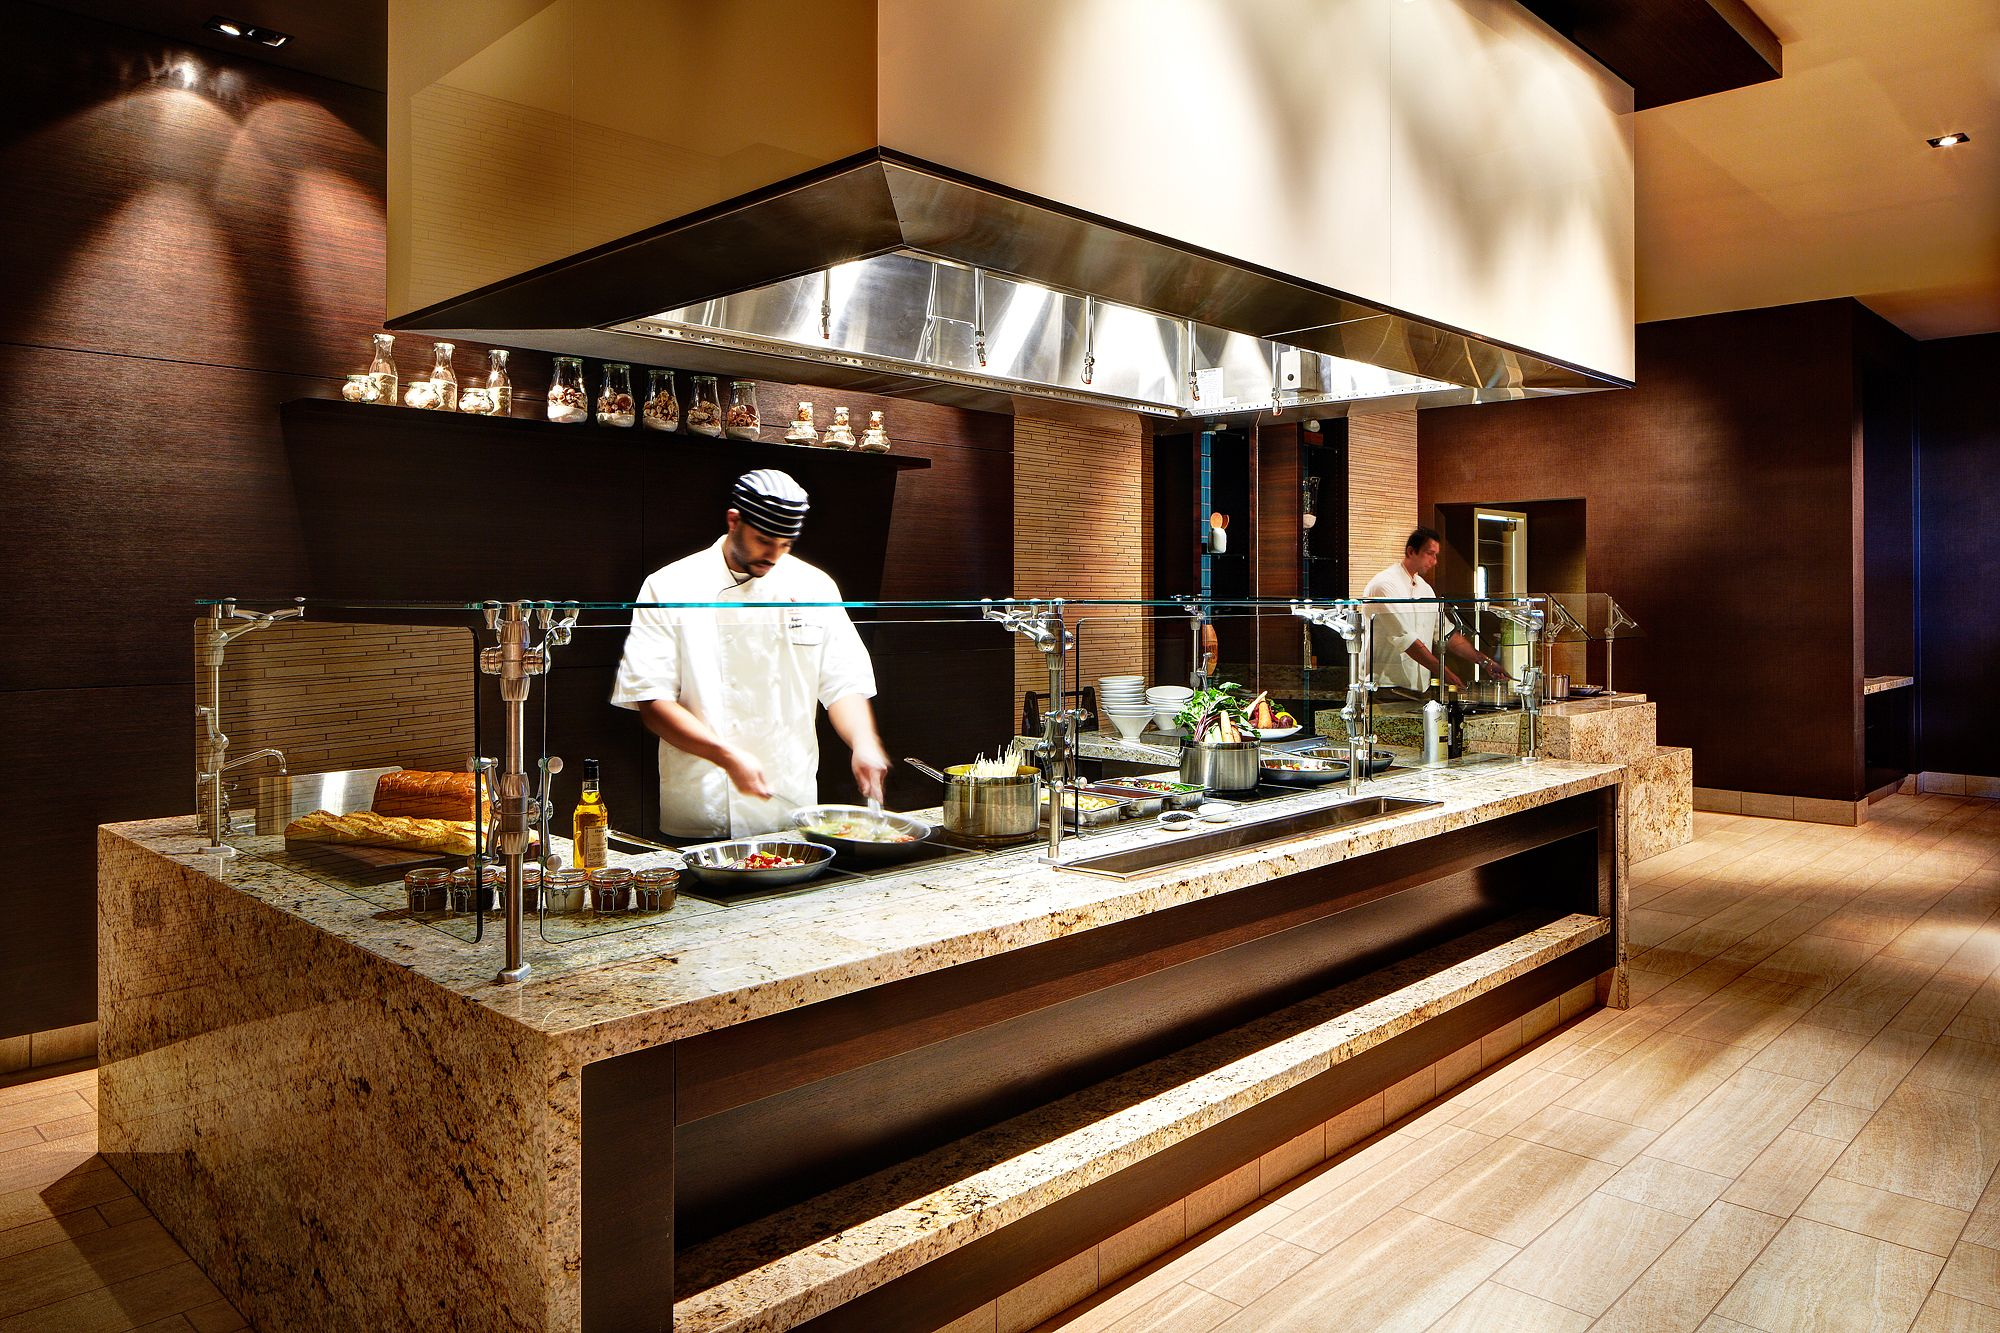 Our buffet station SanDiego Dining Restaurant Hotel